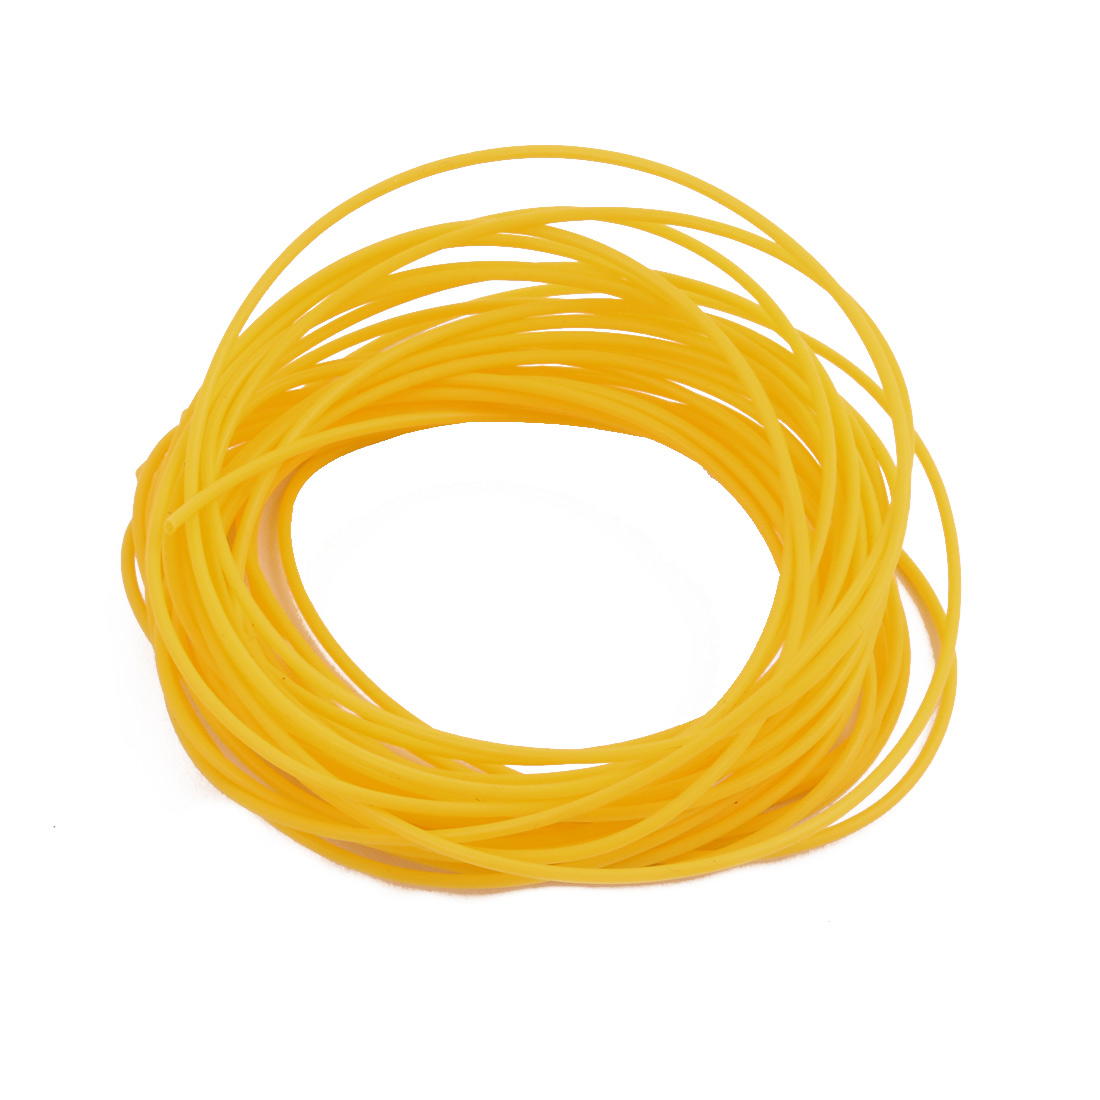 0.86mmx1.16mm PTFE Resistant High Temperature Yellow Tubing 10 Meters 32.8Ft